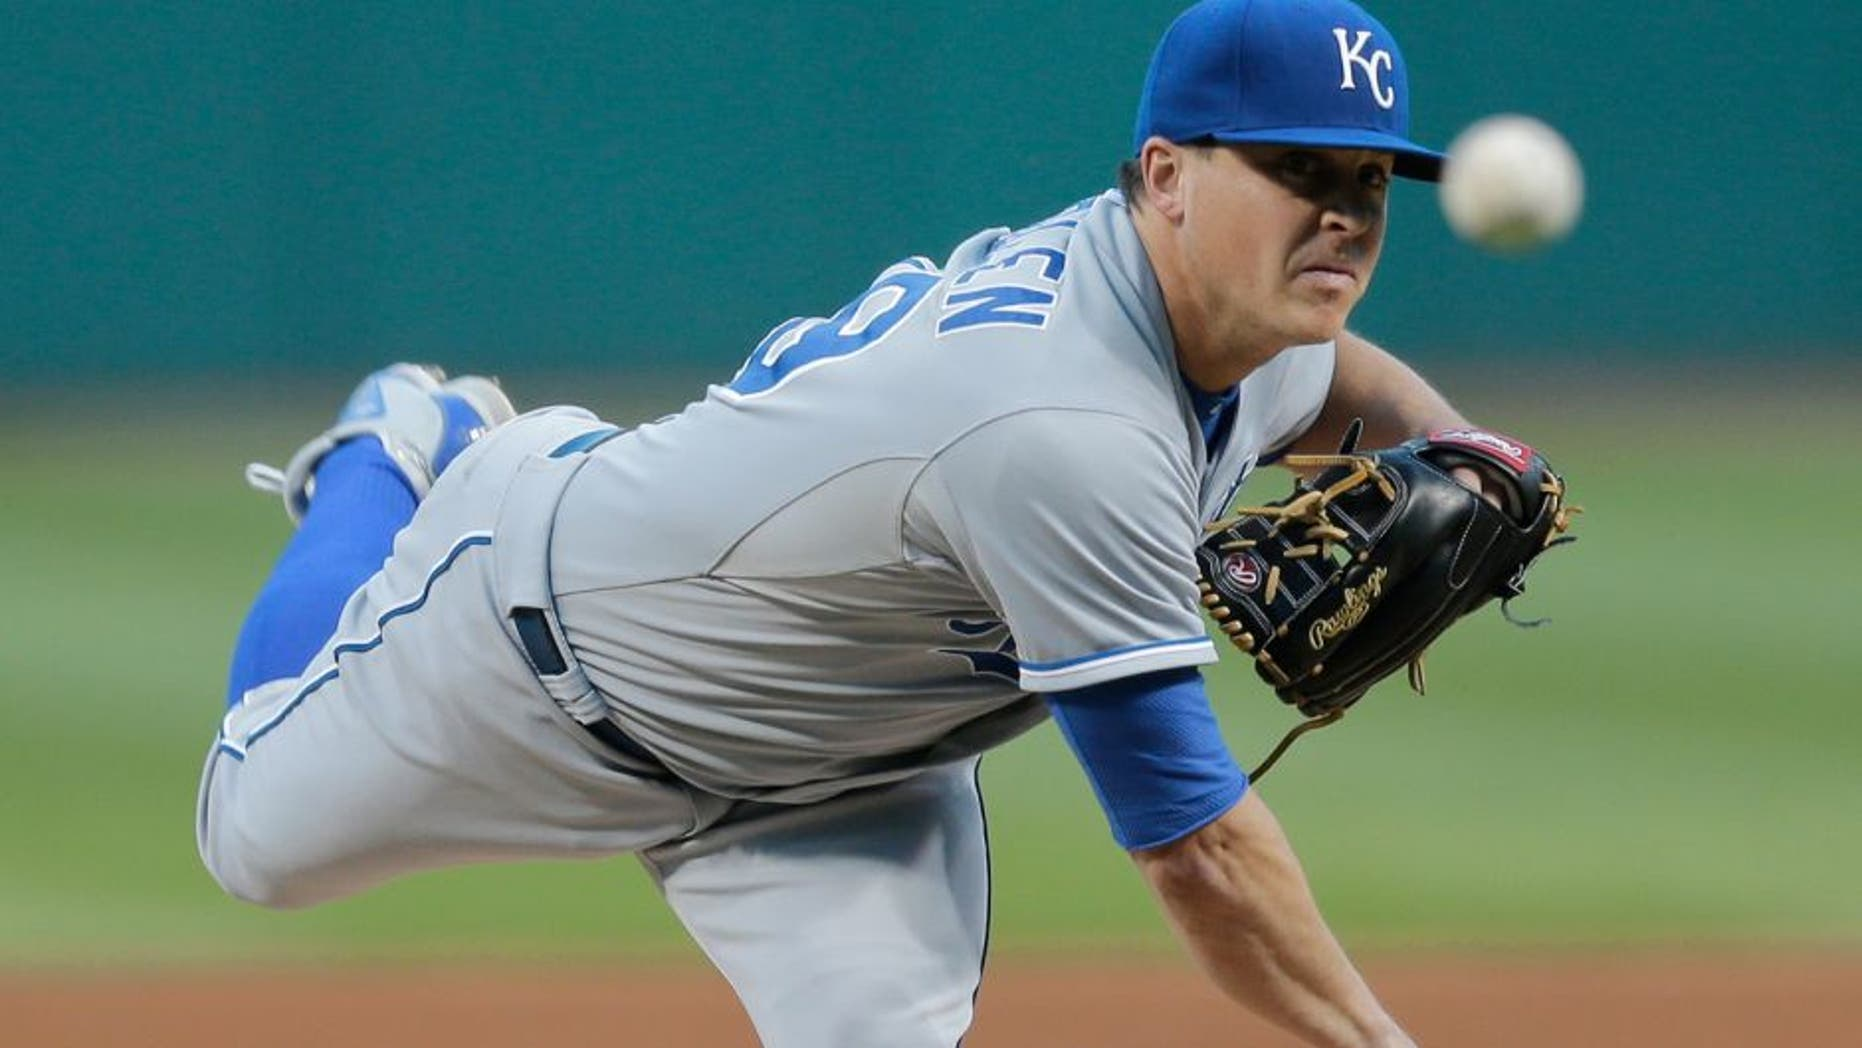 Kansas City Royals starting pitcher Kris Medlen throws during the first inning of a baseball game against the Cleveland Indians, Tuesday, Sept. 15, 2015, in Cleveland. (AP Photo/Tony Dejak)